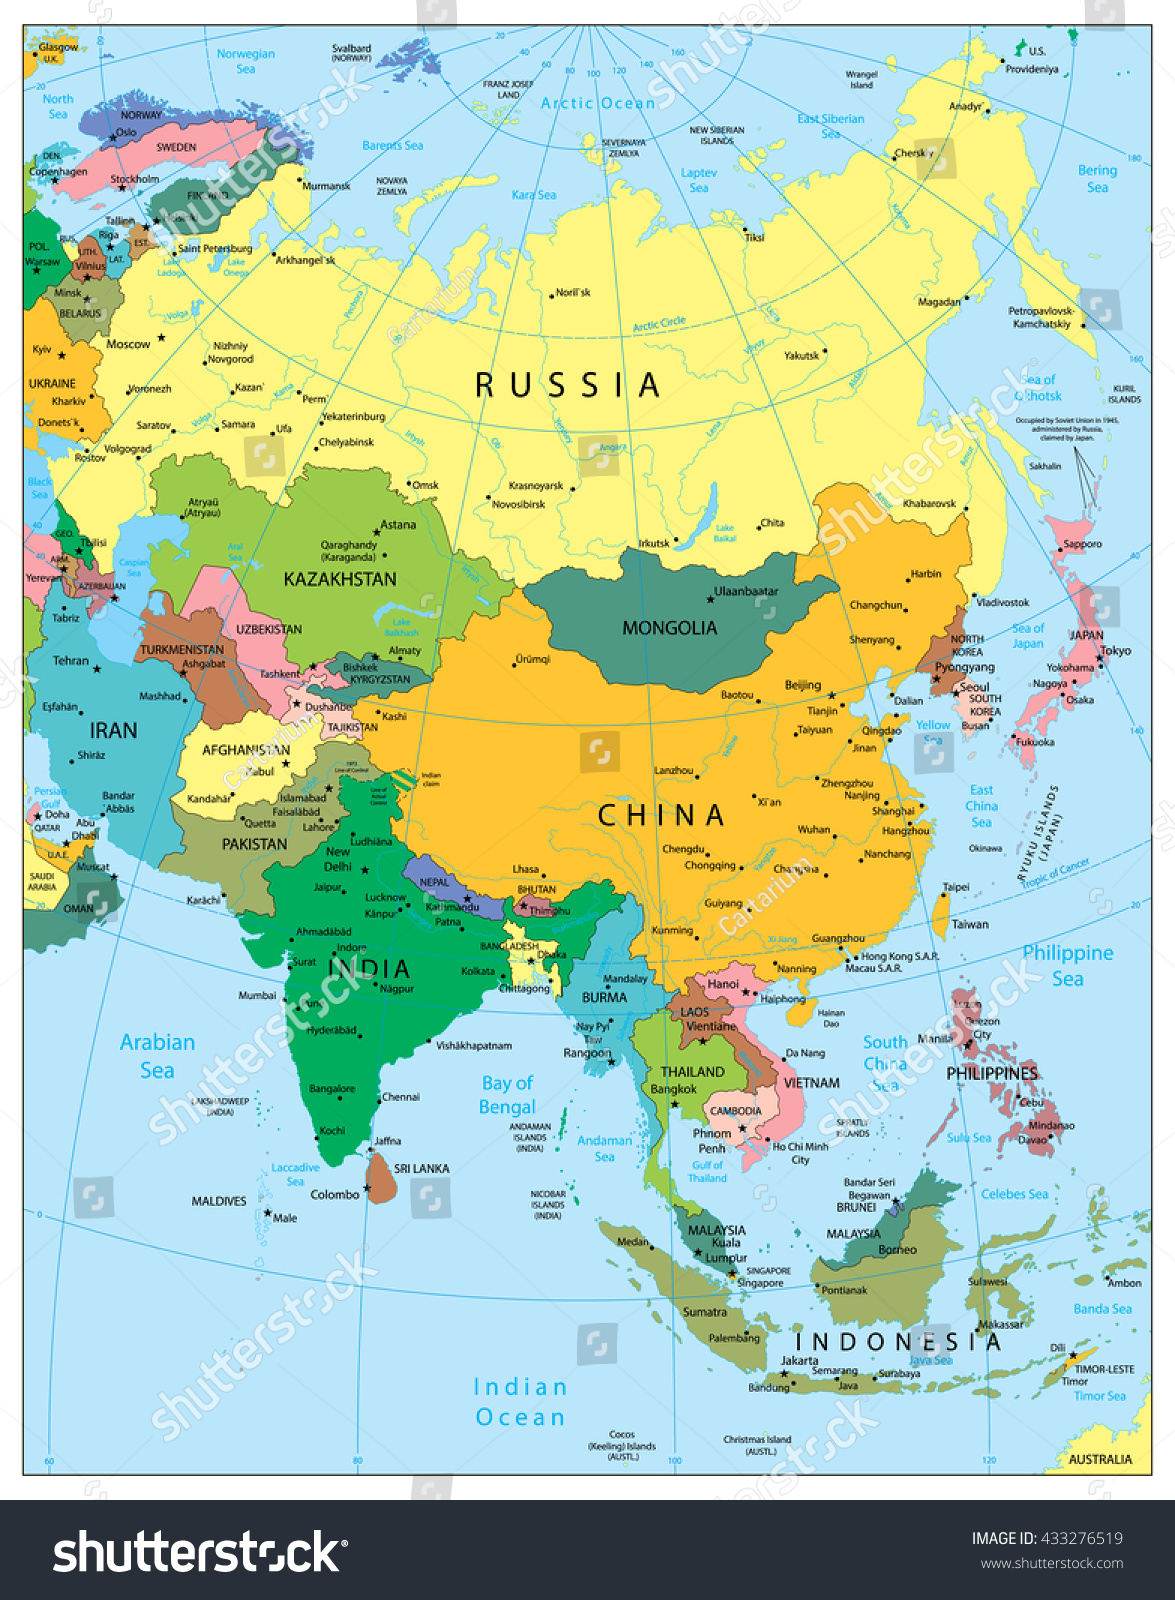 Asia Highly Detailed Political Map Elements Stock Vector - Asia map labeled